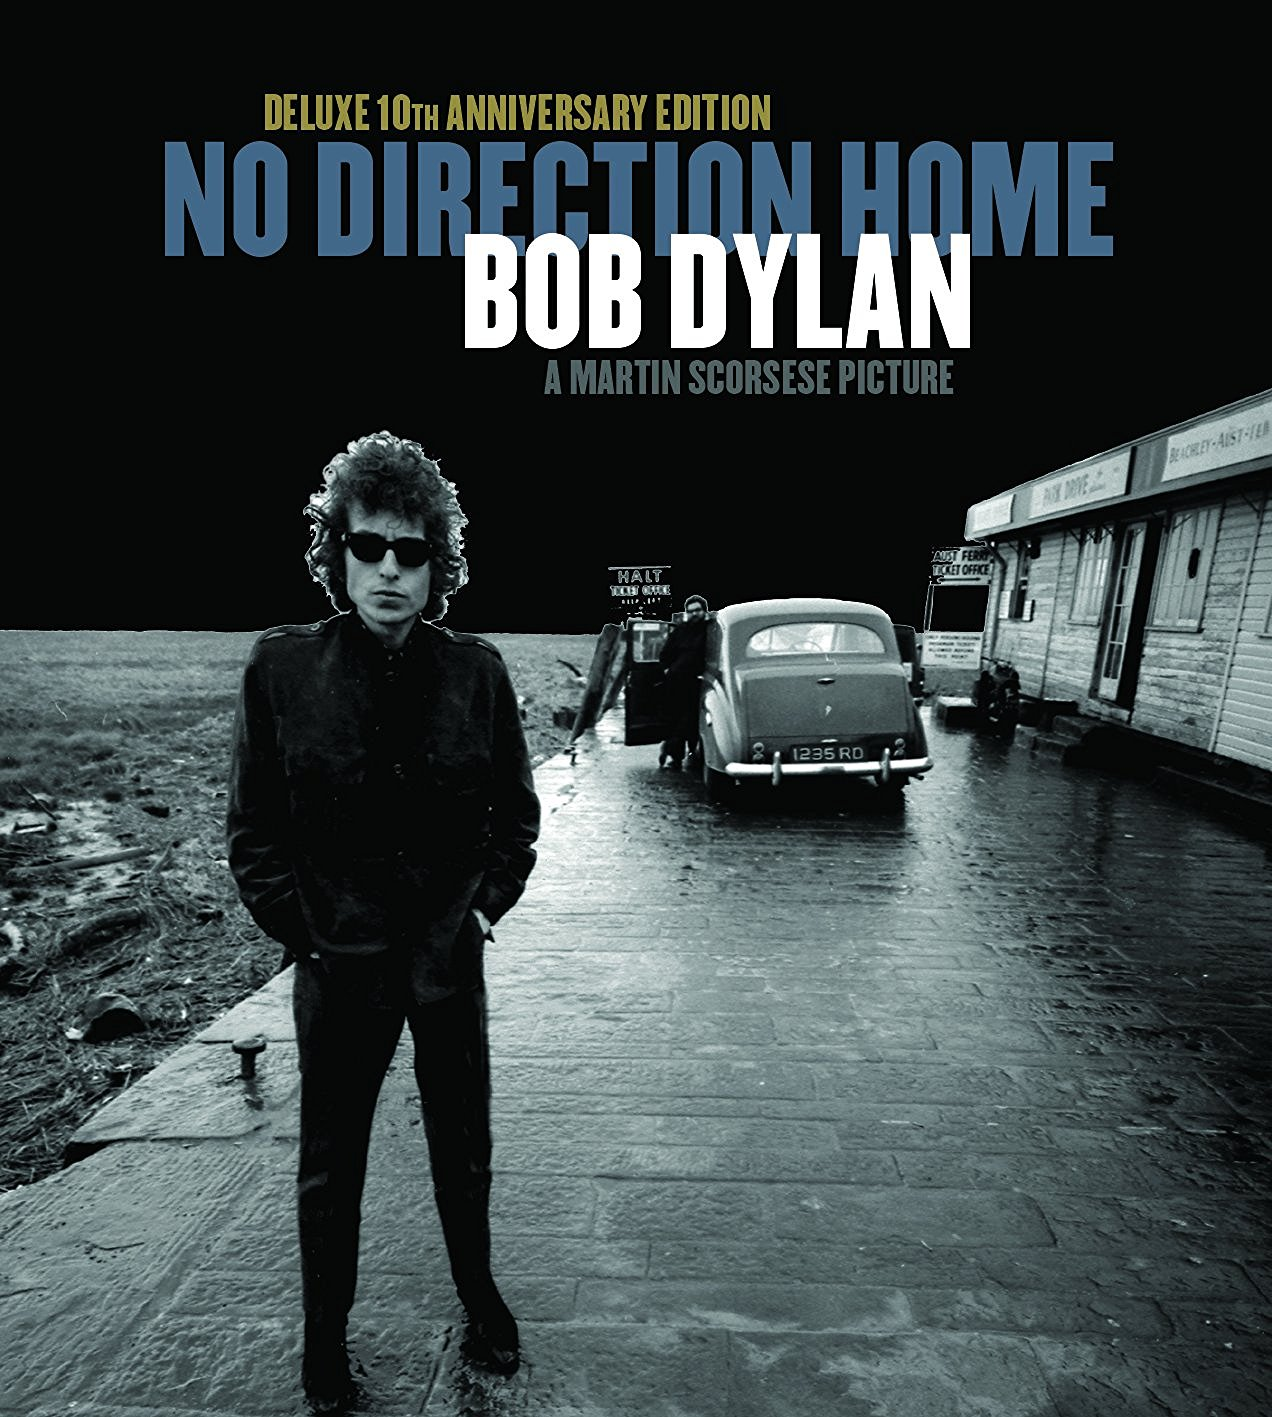 Bob Dylan - No Direction Home: Bob Dylan Documentary [Deluxe 10th Anniversary Edition]